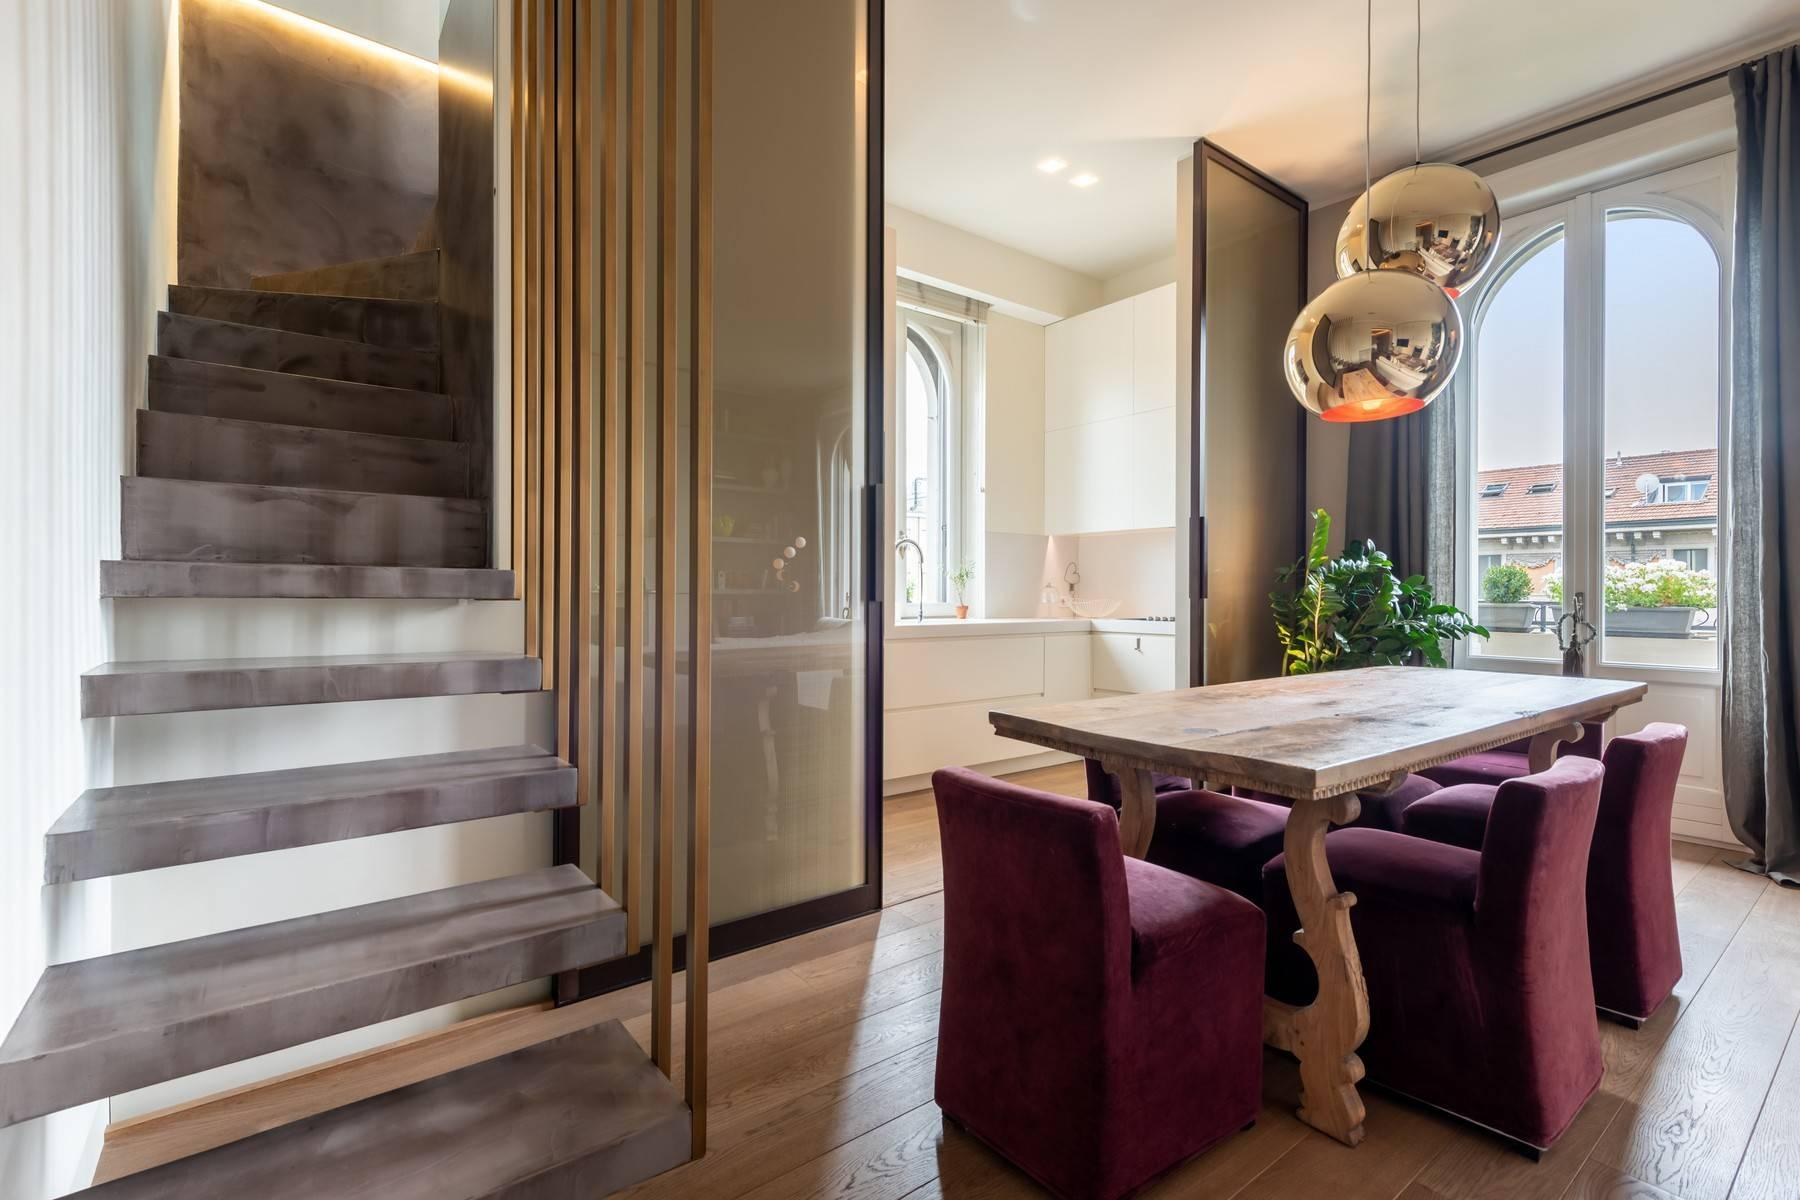 Beautiful penthouse perfectly renovated with great taste - 2